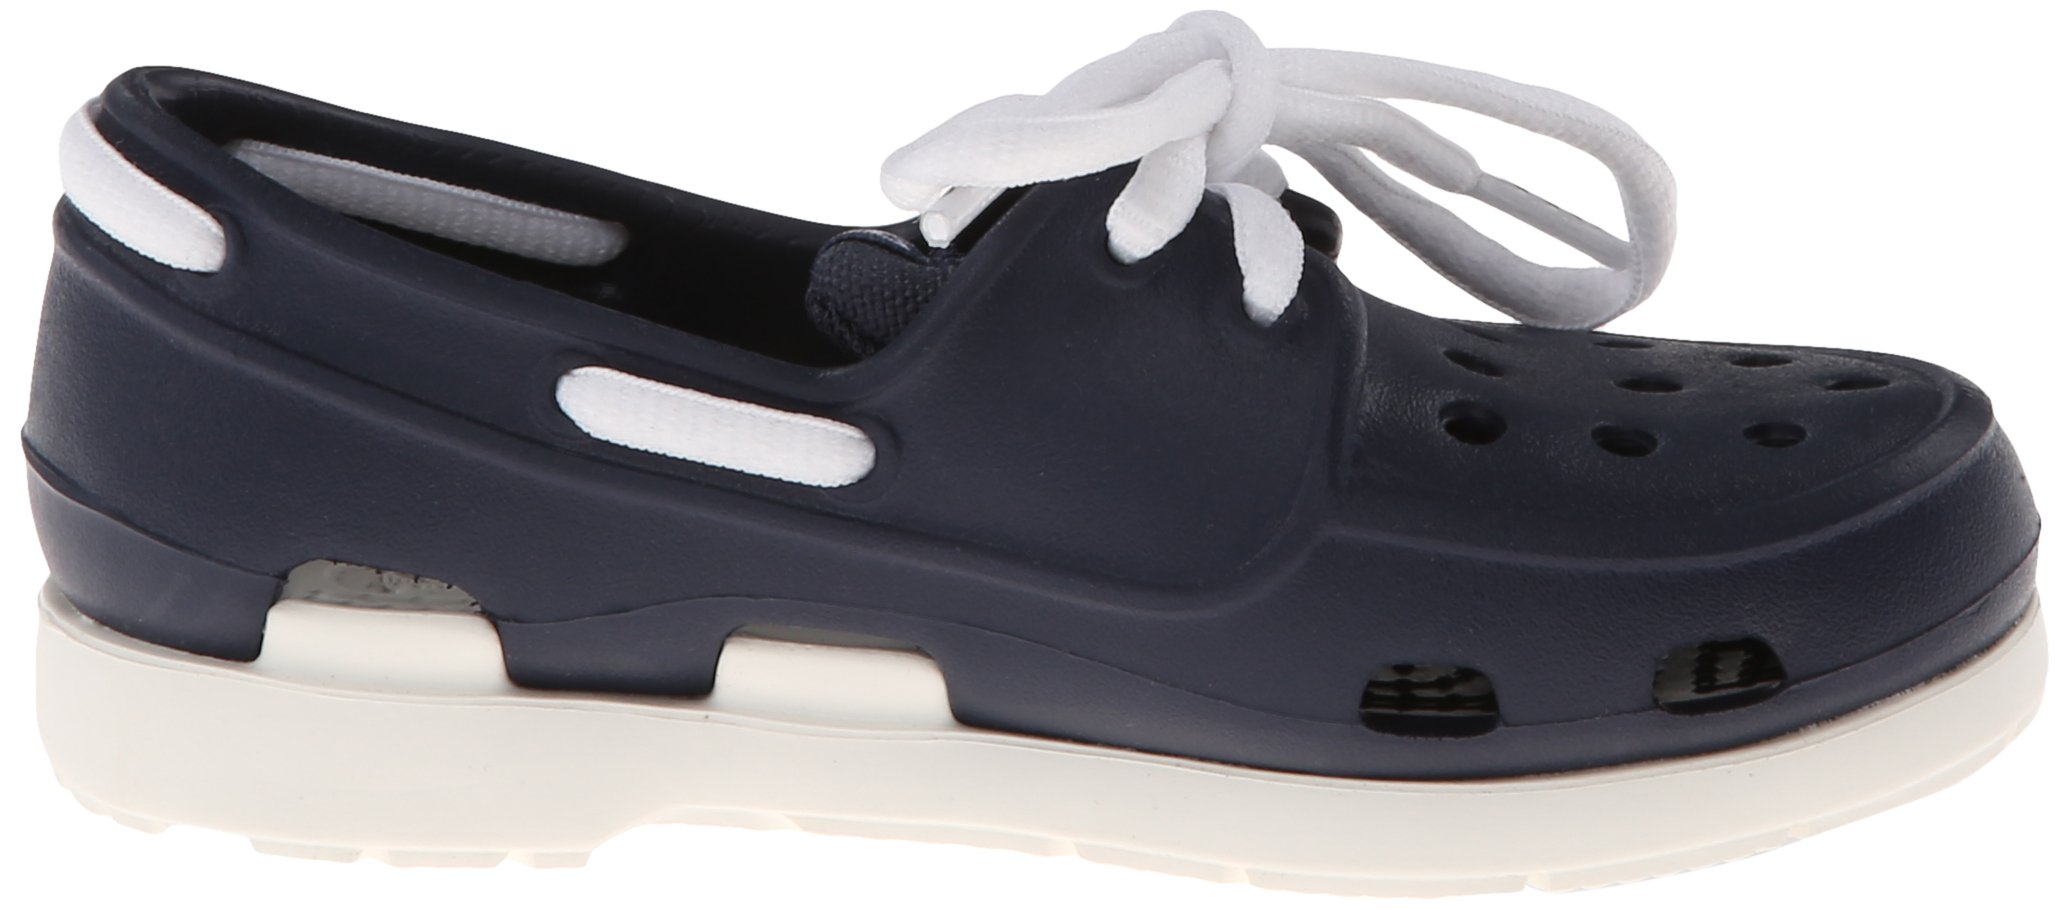 crocs Beach Line Lace PS Boat Shoe (Toddler/Little Kid),Navy/White,10 M US Toddler by Crocs (Image #6)